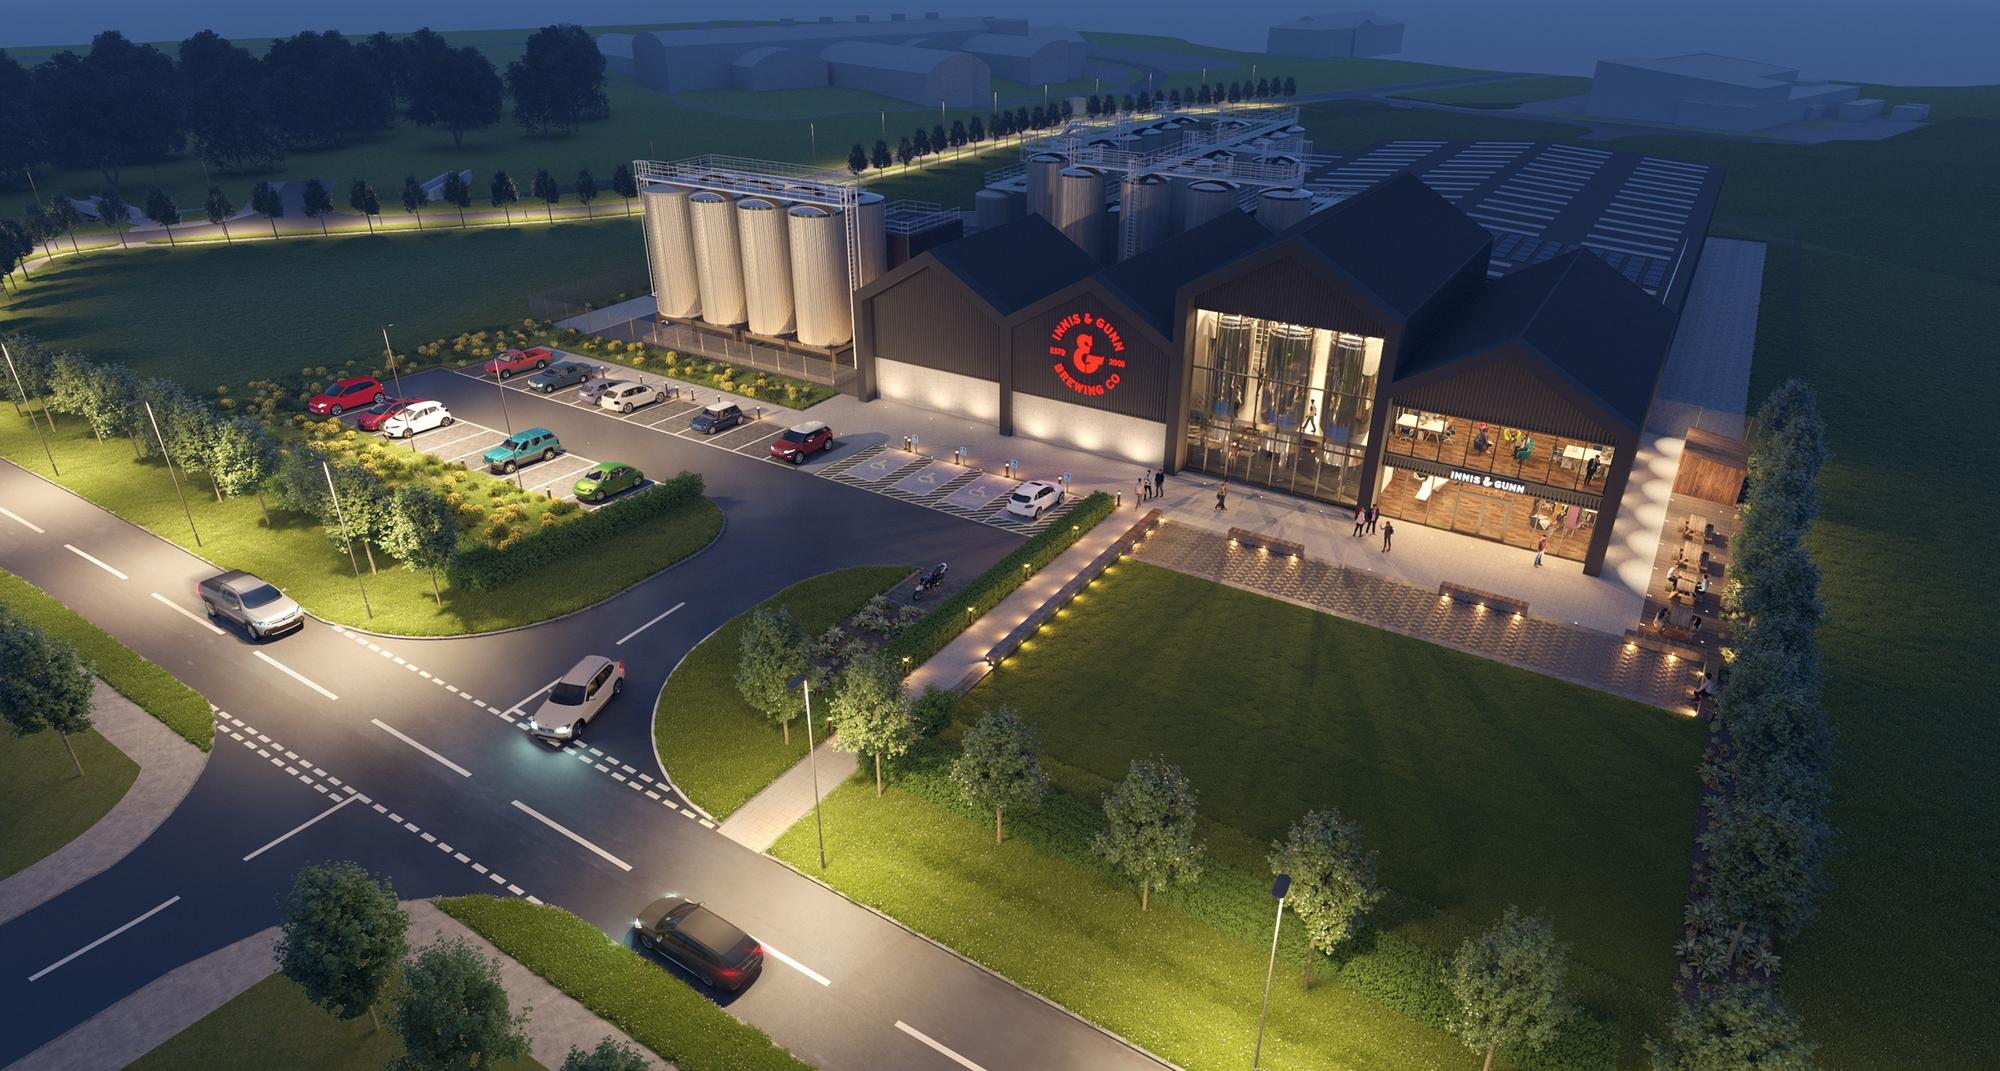 Innis & Gunn Submits Planning Application For Major First Brewery In Edinburgh In 150 Years photo